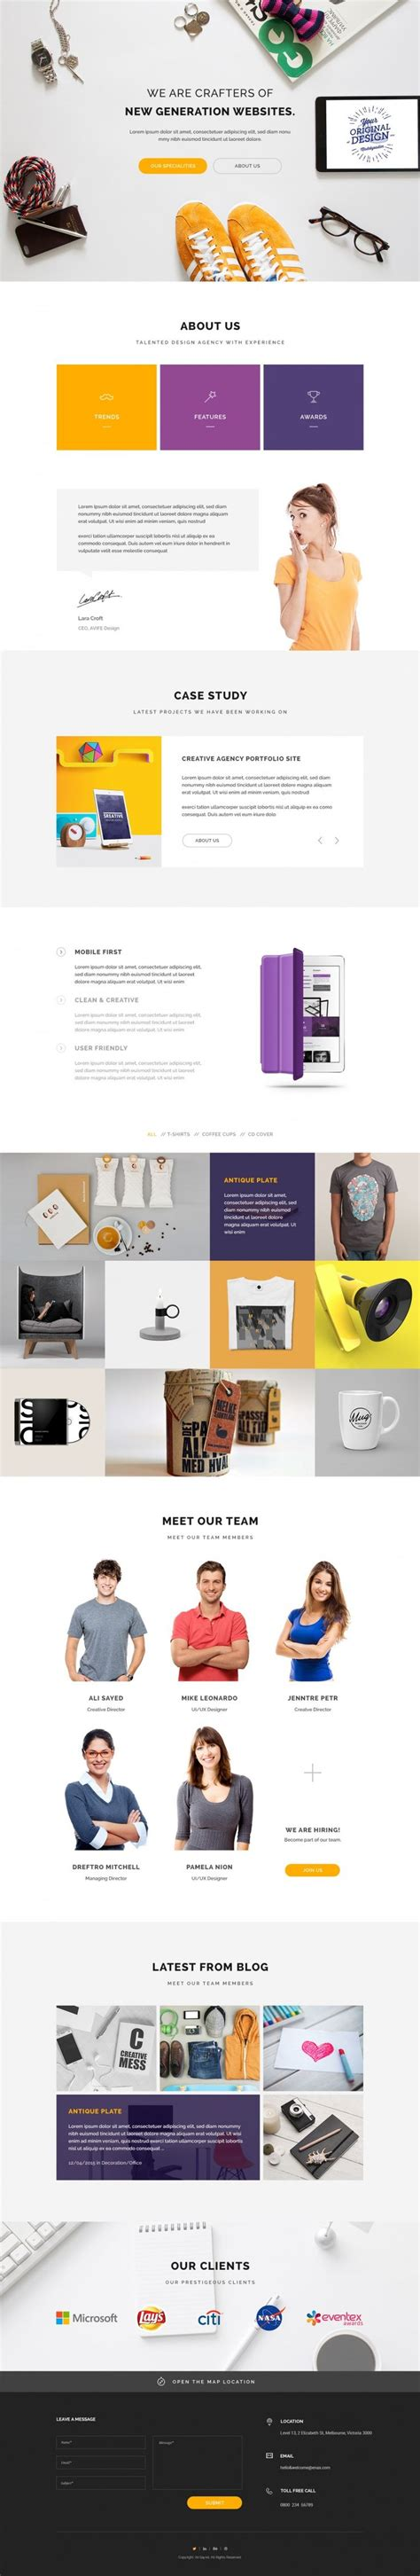 app design agency learn graphic design at home myfavoriteheadache com